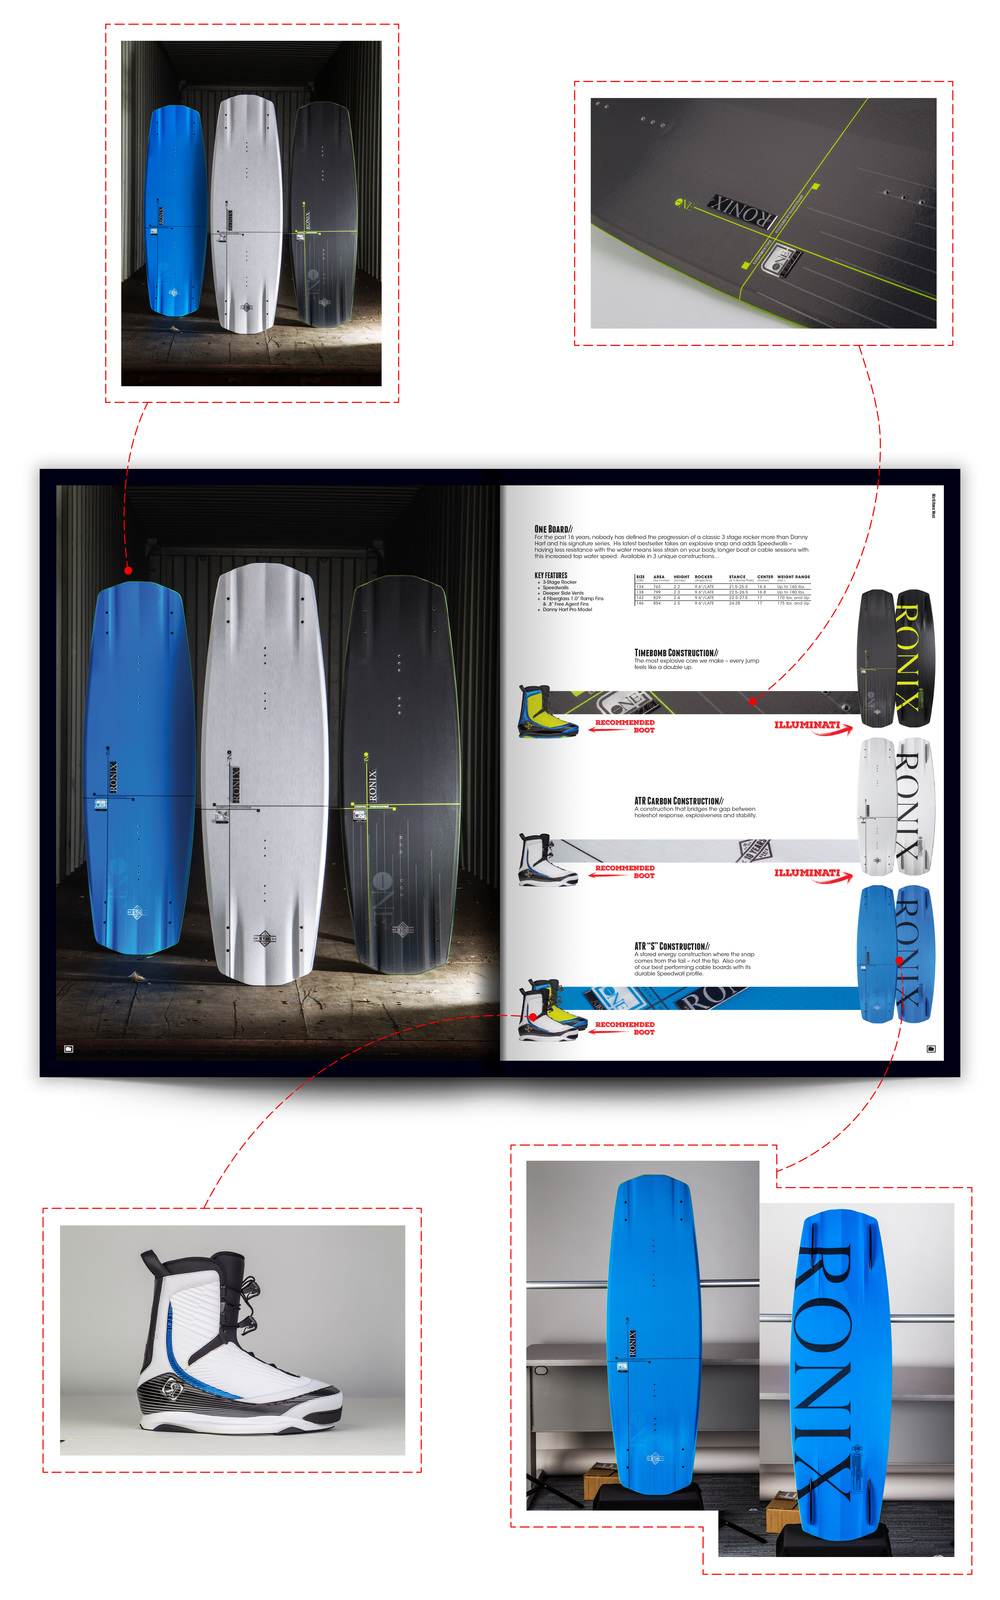 RONIX_BROCHURE_PAGE_DETAILS_2.jpg